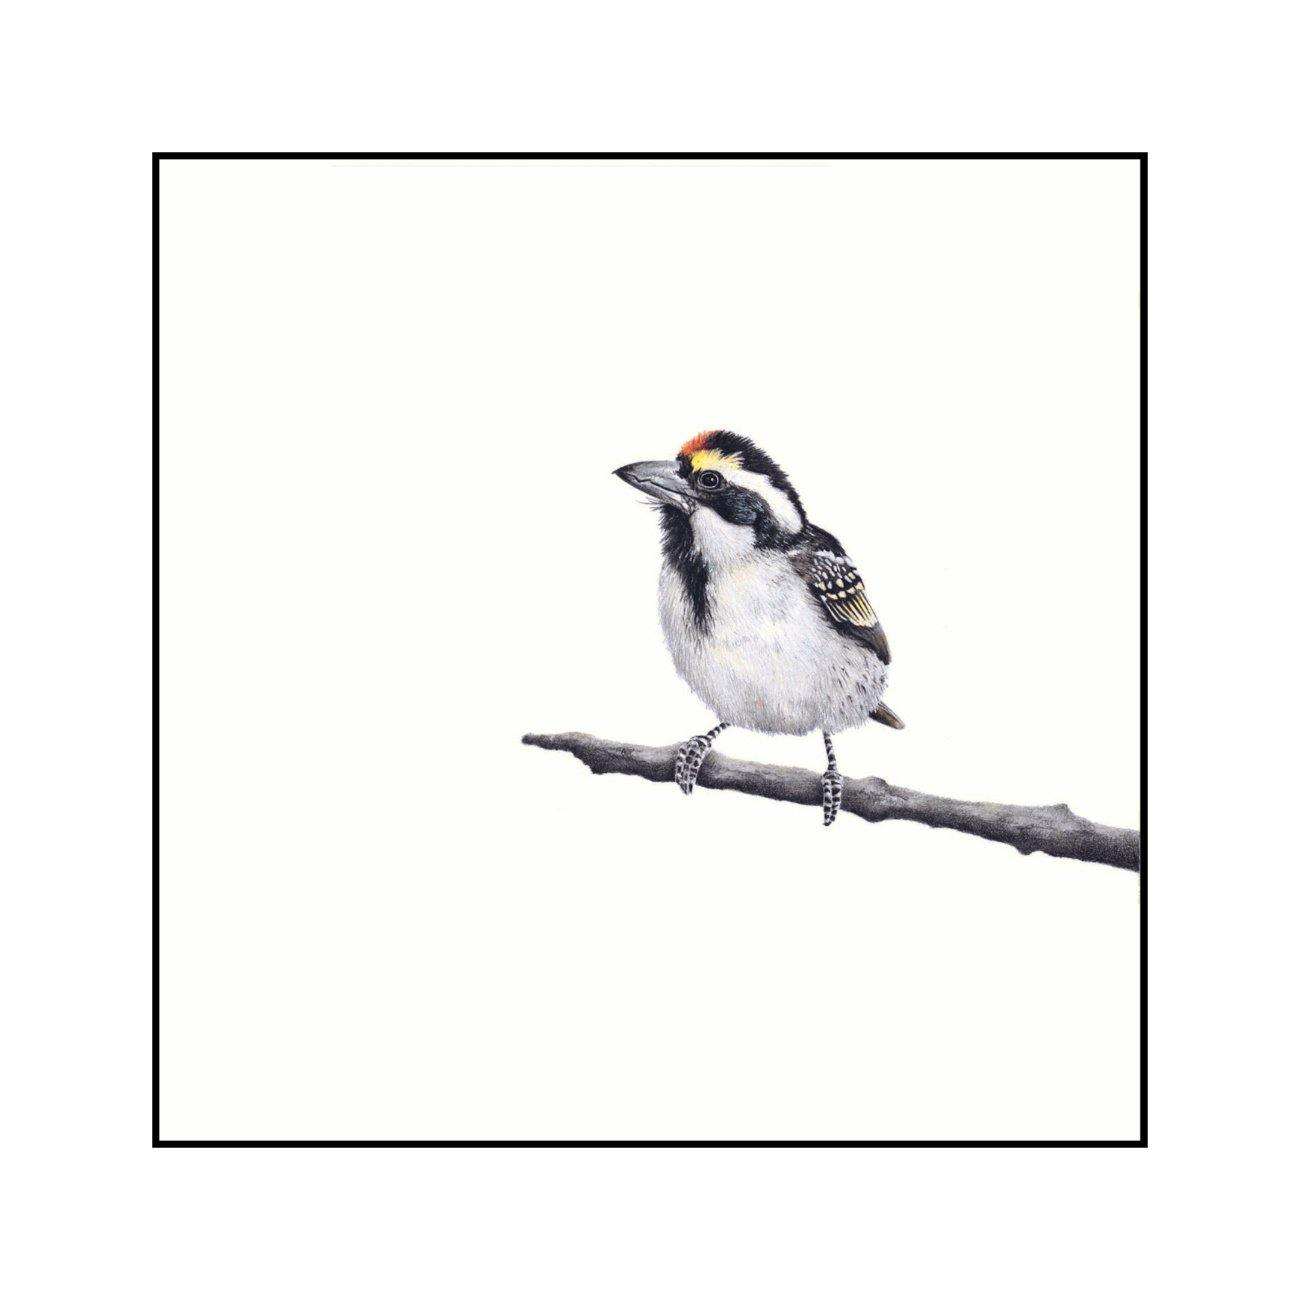 Acacia Pied Barbet - The Original